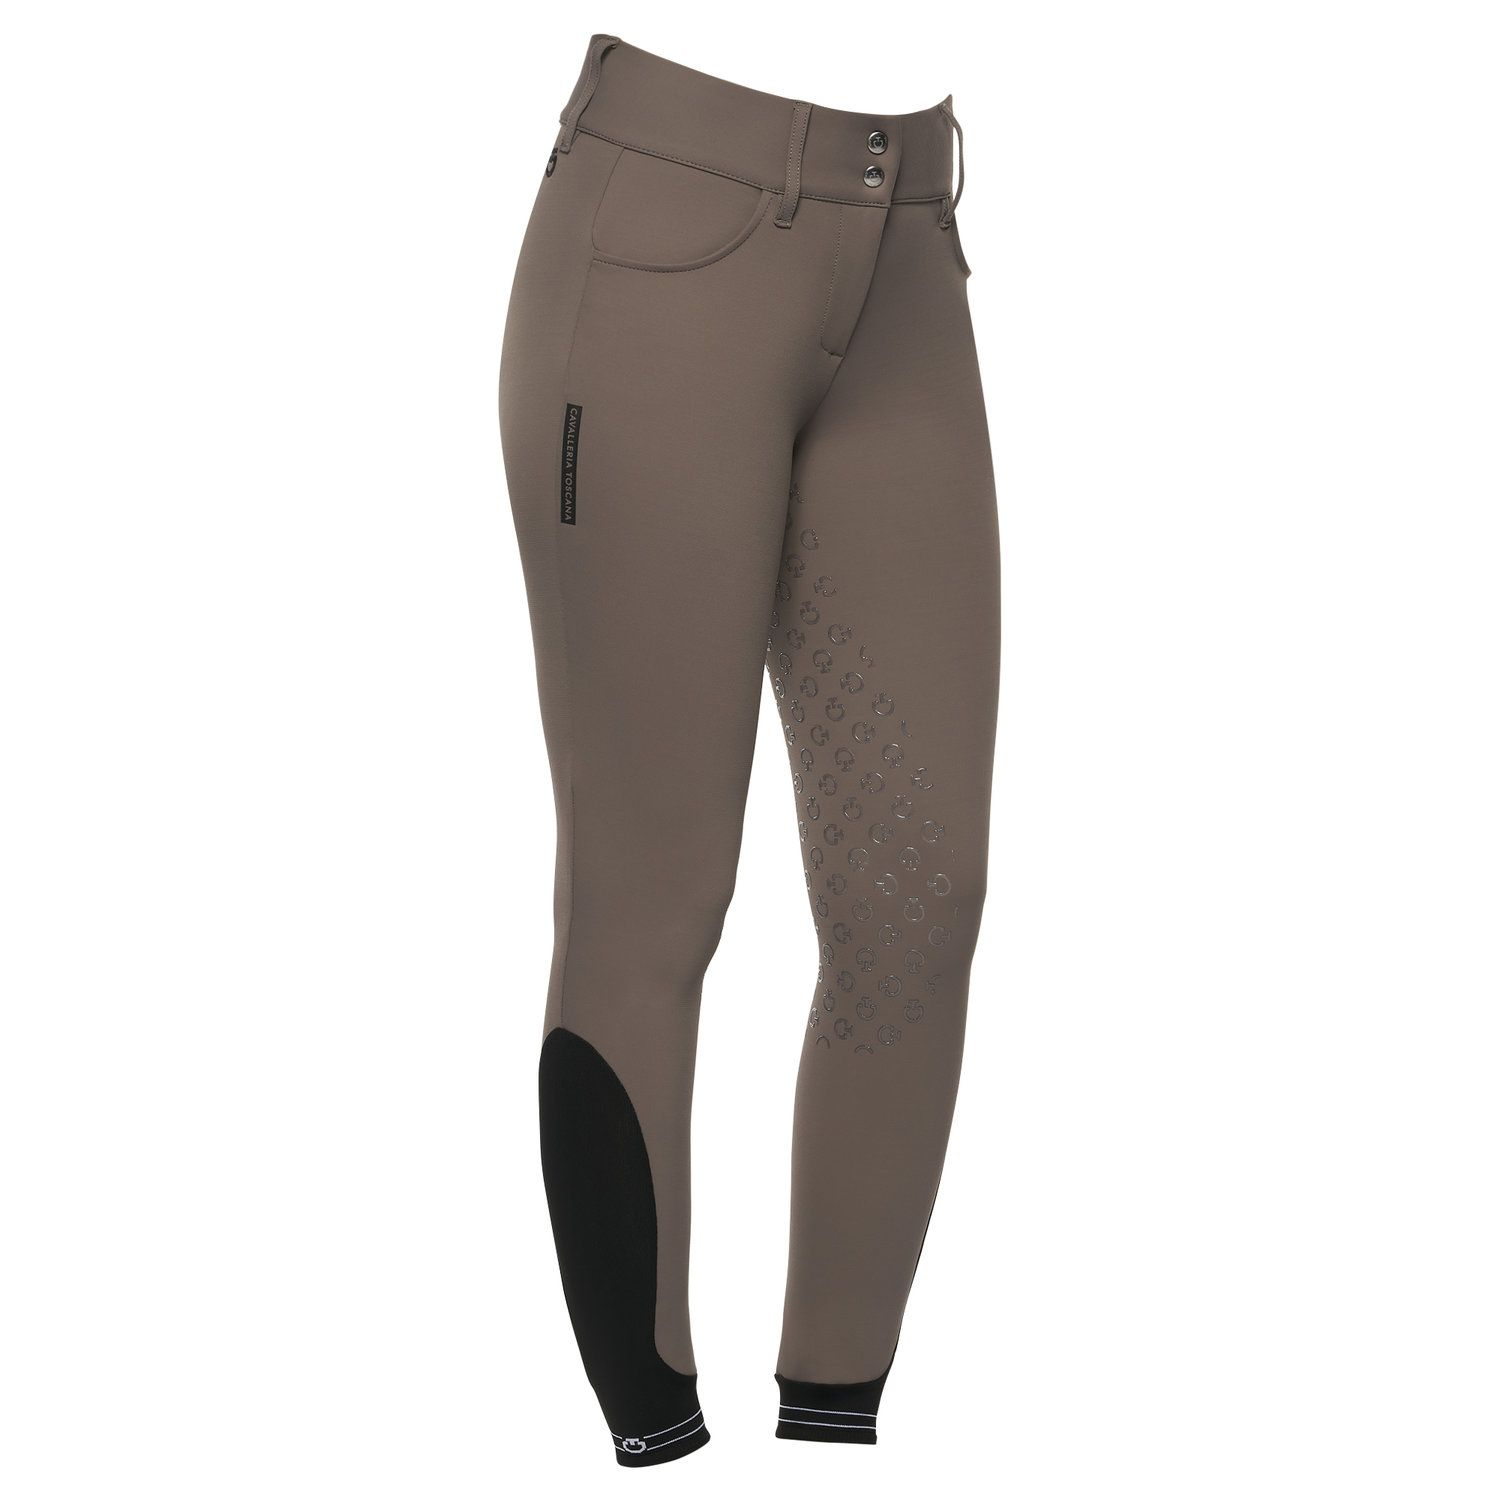 Women's dressage breeches with perforated logo tape